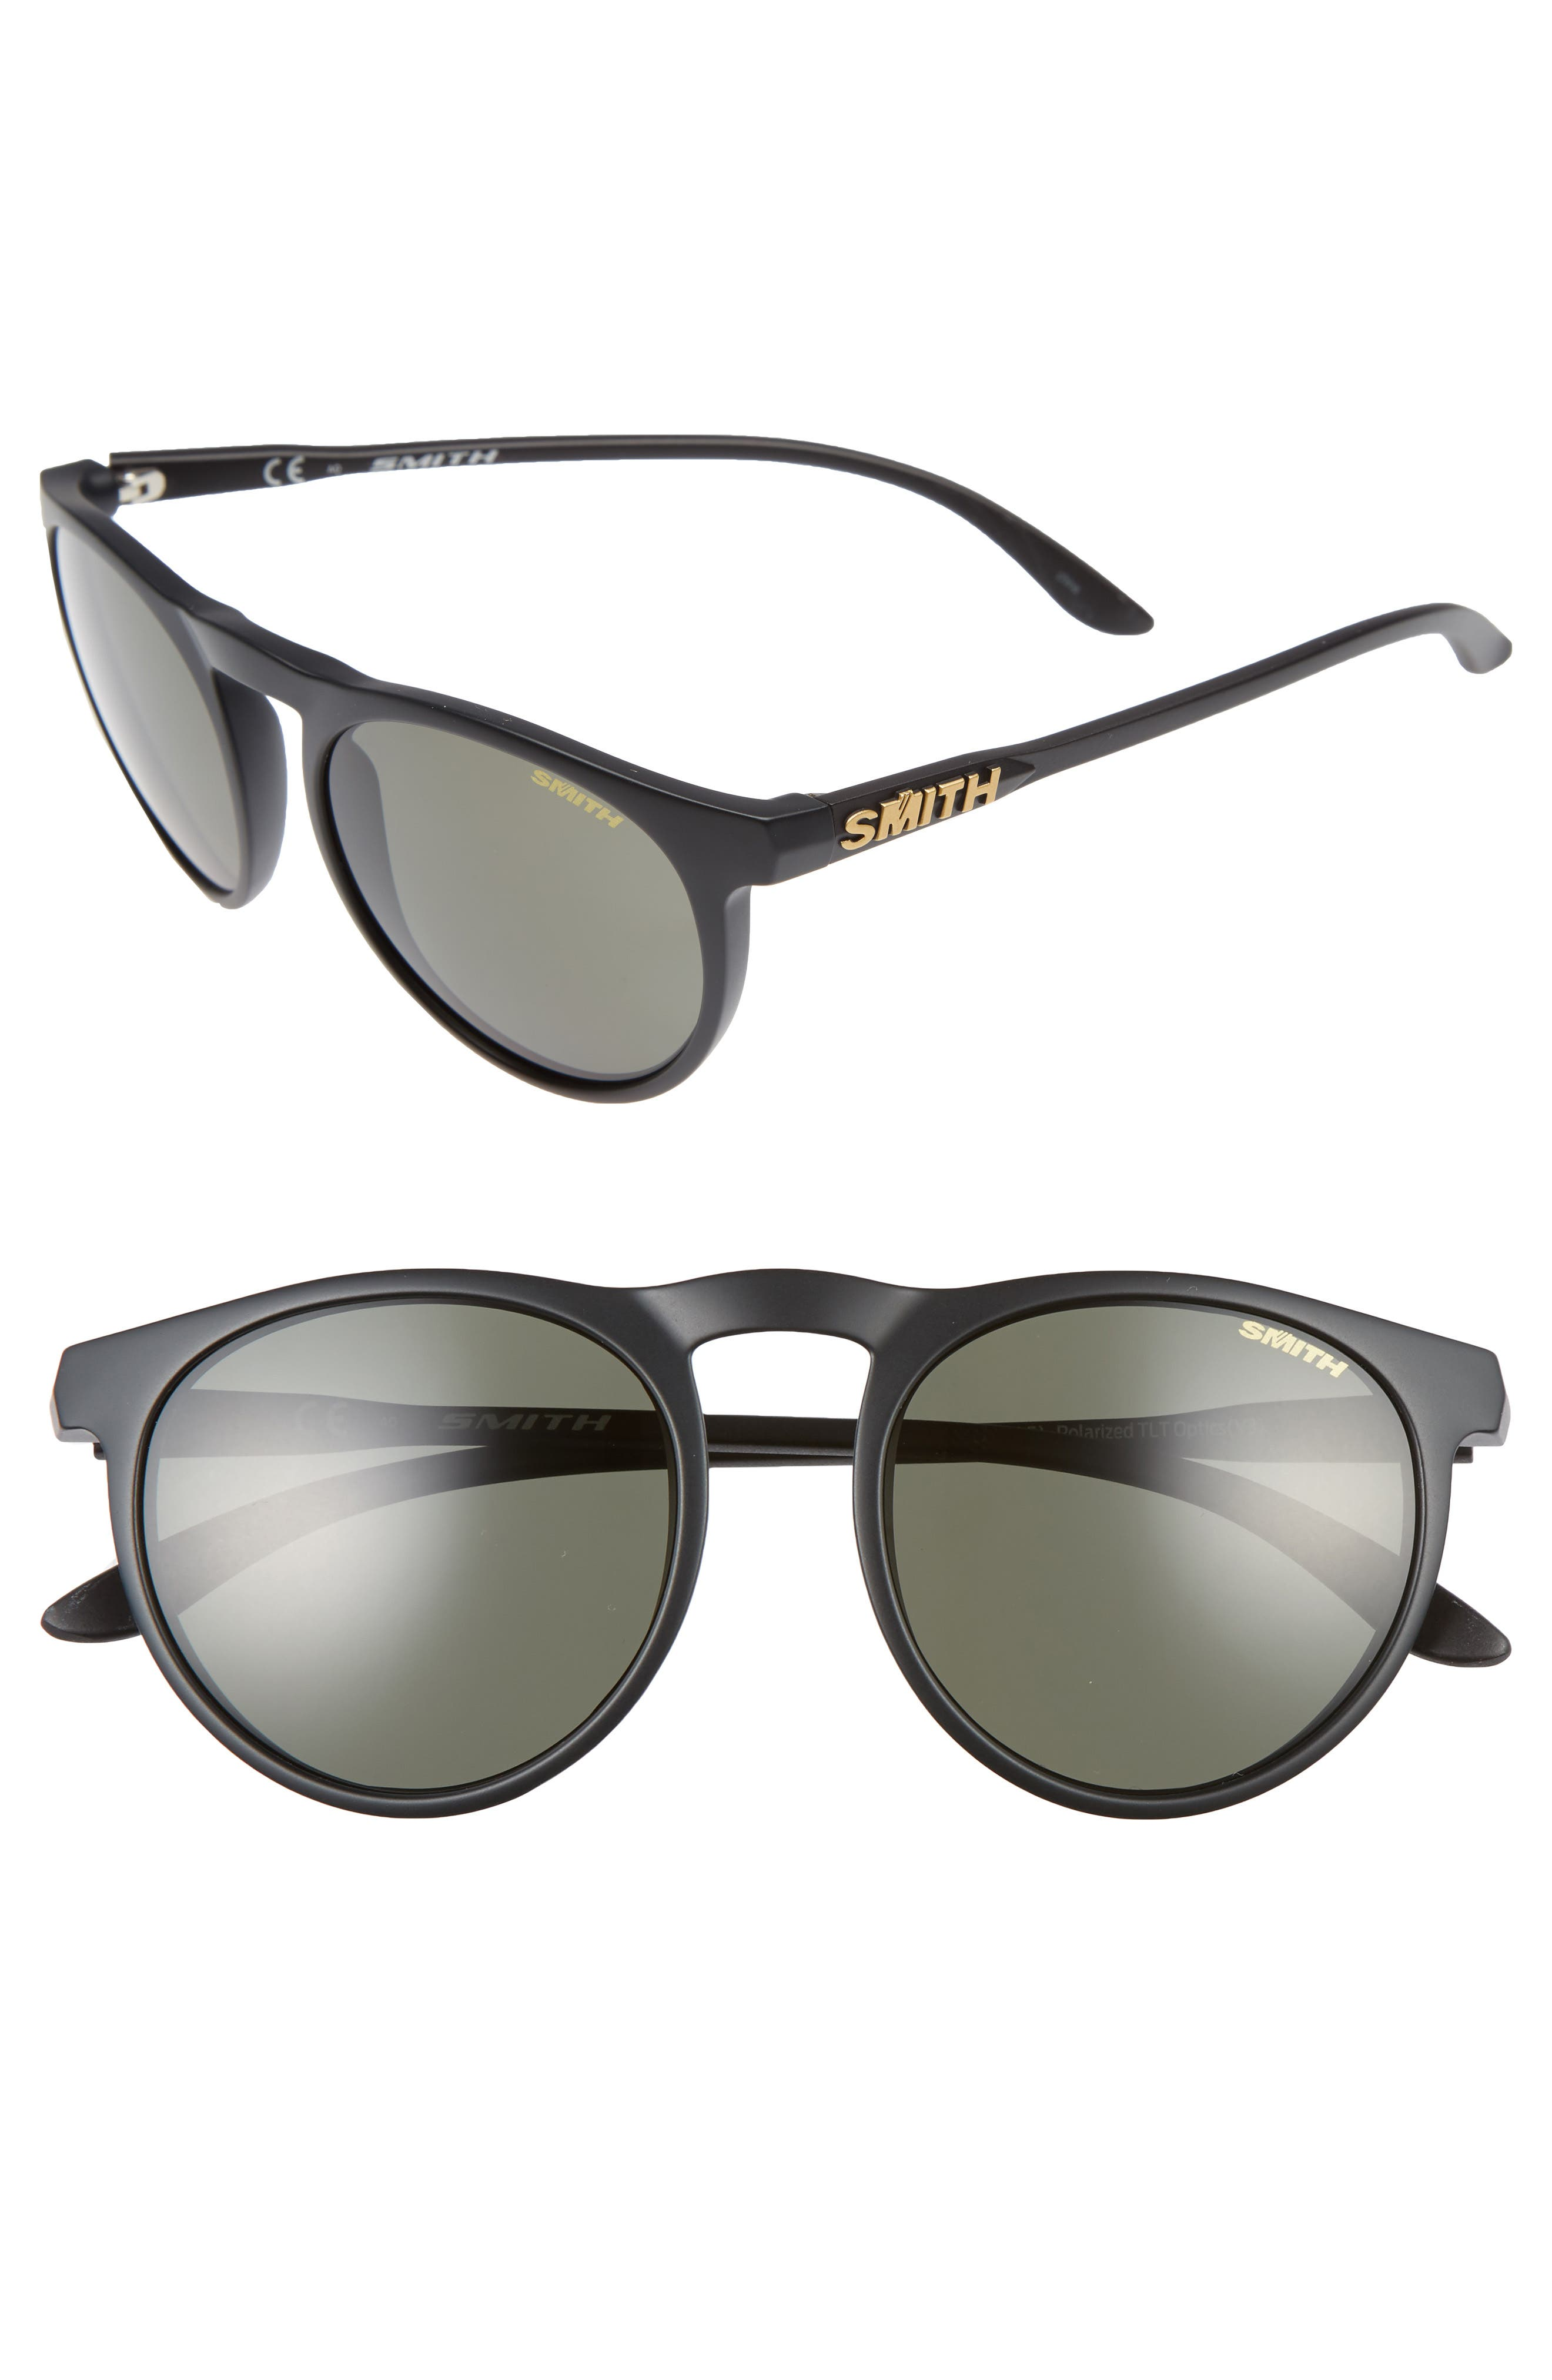 Alternate Image 1 Selected - Smith Marvine 52mm Polarized Round Sunglasses